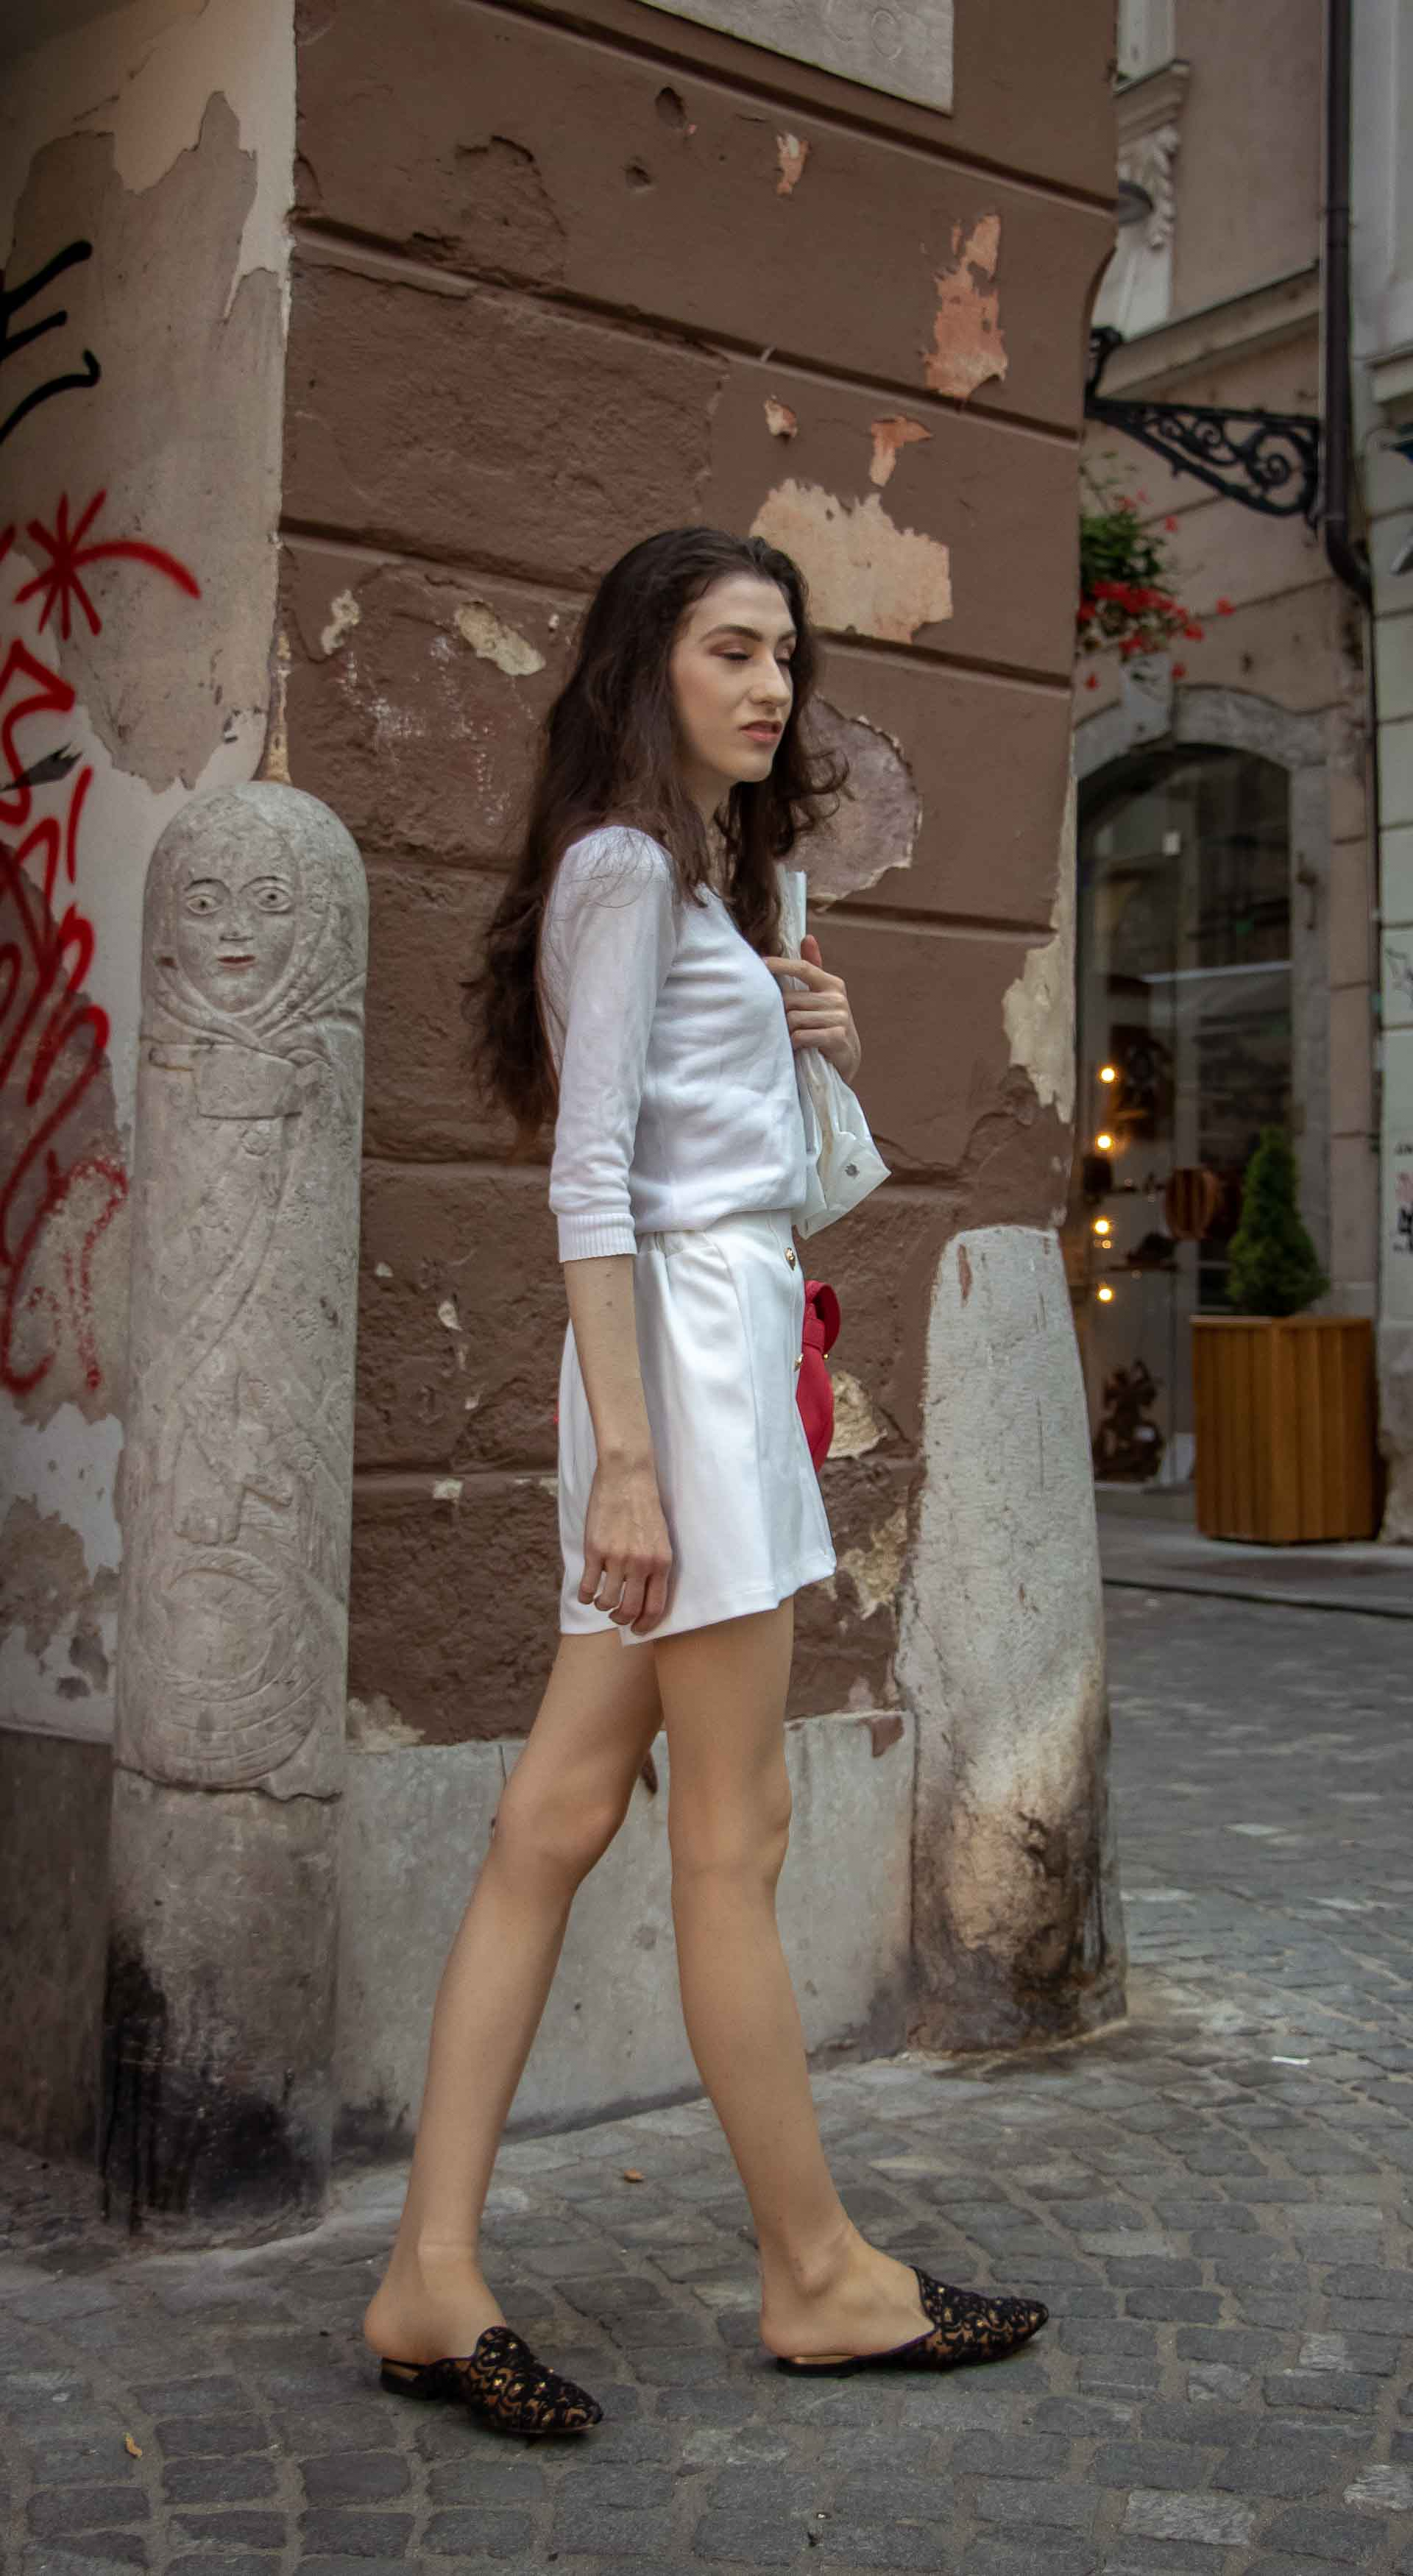 Beautiful Slovenian Fashion Blogger Veronika Lipar of Brunette from Wall dressed in all in white outfit, a white sweater, white tailored shorts, black flat slipper mules, pink top handle bag, a paper bag while walking on the street in Ljubljana